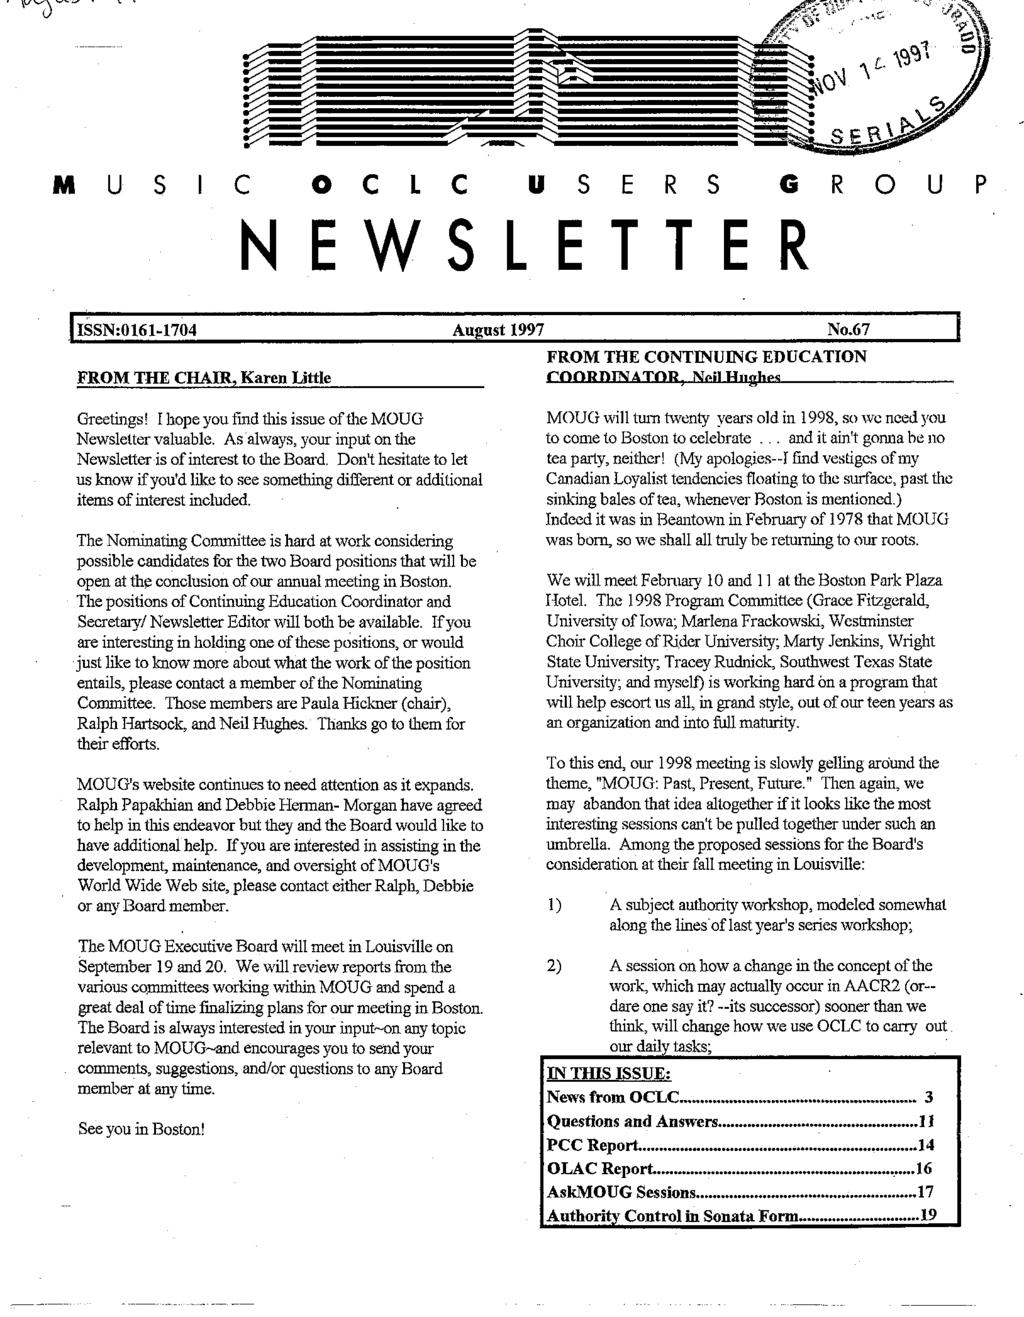 M U S I C O C L C U S E R S G R O U P NEWSLETTER ISSN.0161-1704 August 1997 No.67 I FROM THE CONTINUING EDUCATION FROM THE CHAIR, Karen Little Greetings!